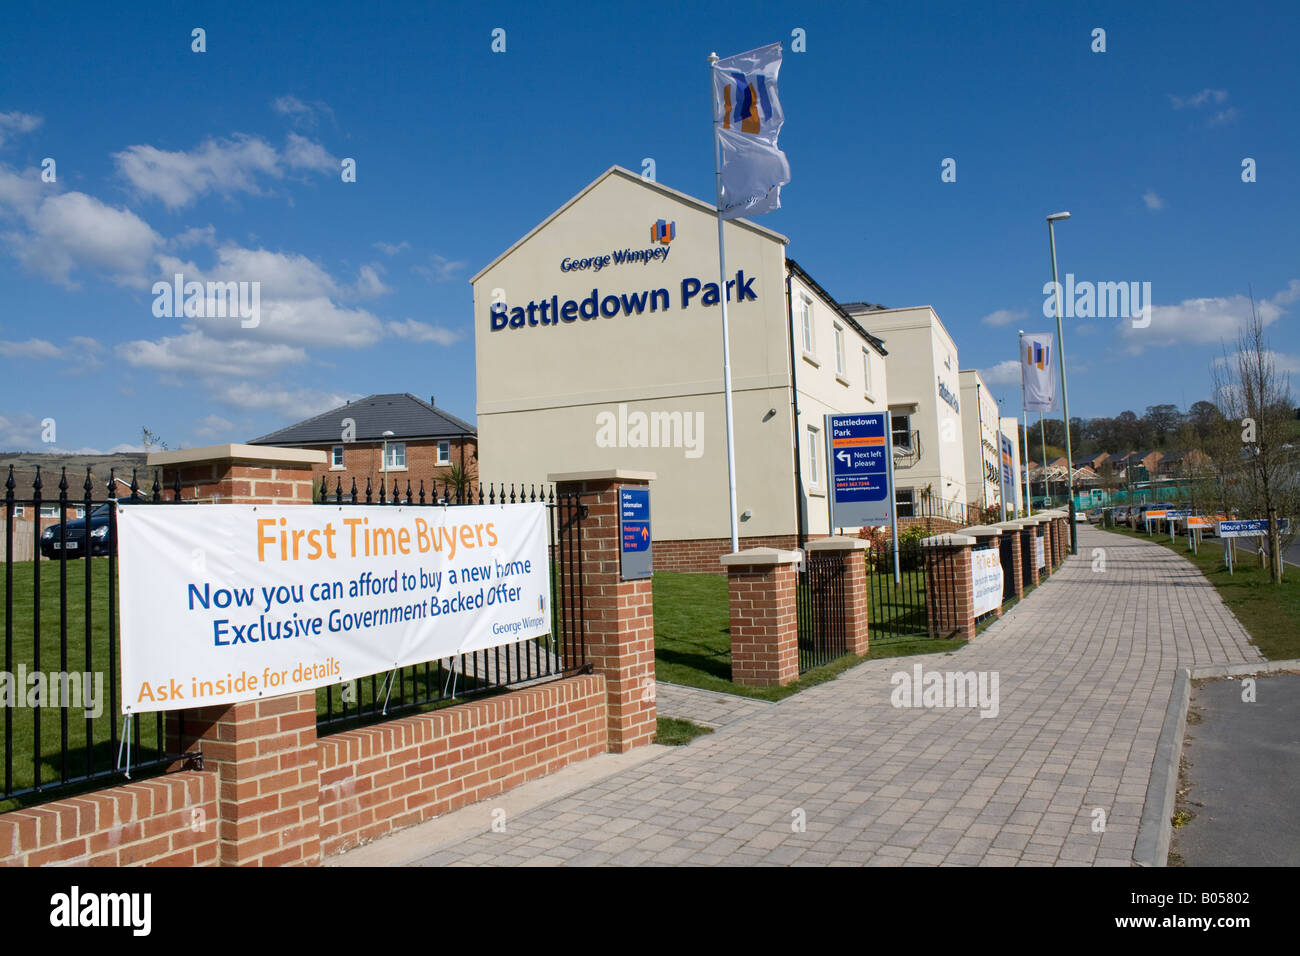 New first time buyers Wimpey properties Battledown Park Cheltenham UK - Stock Image